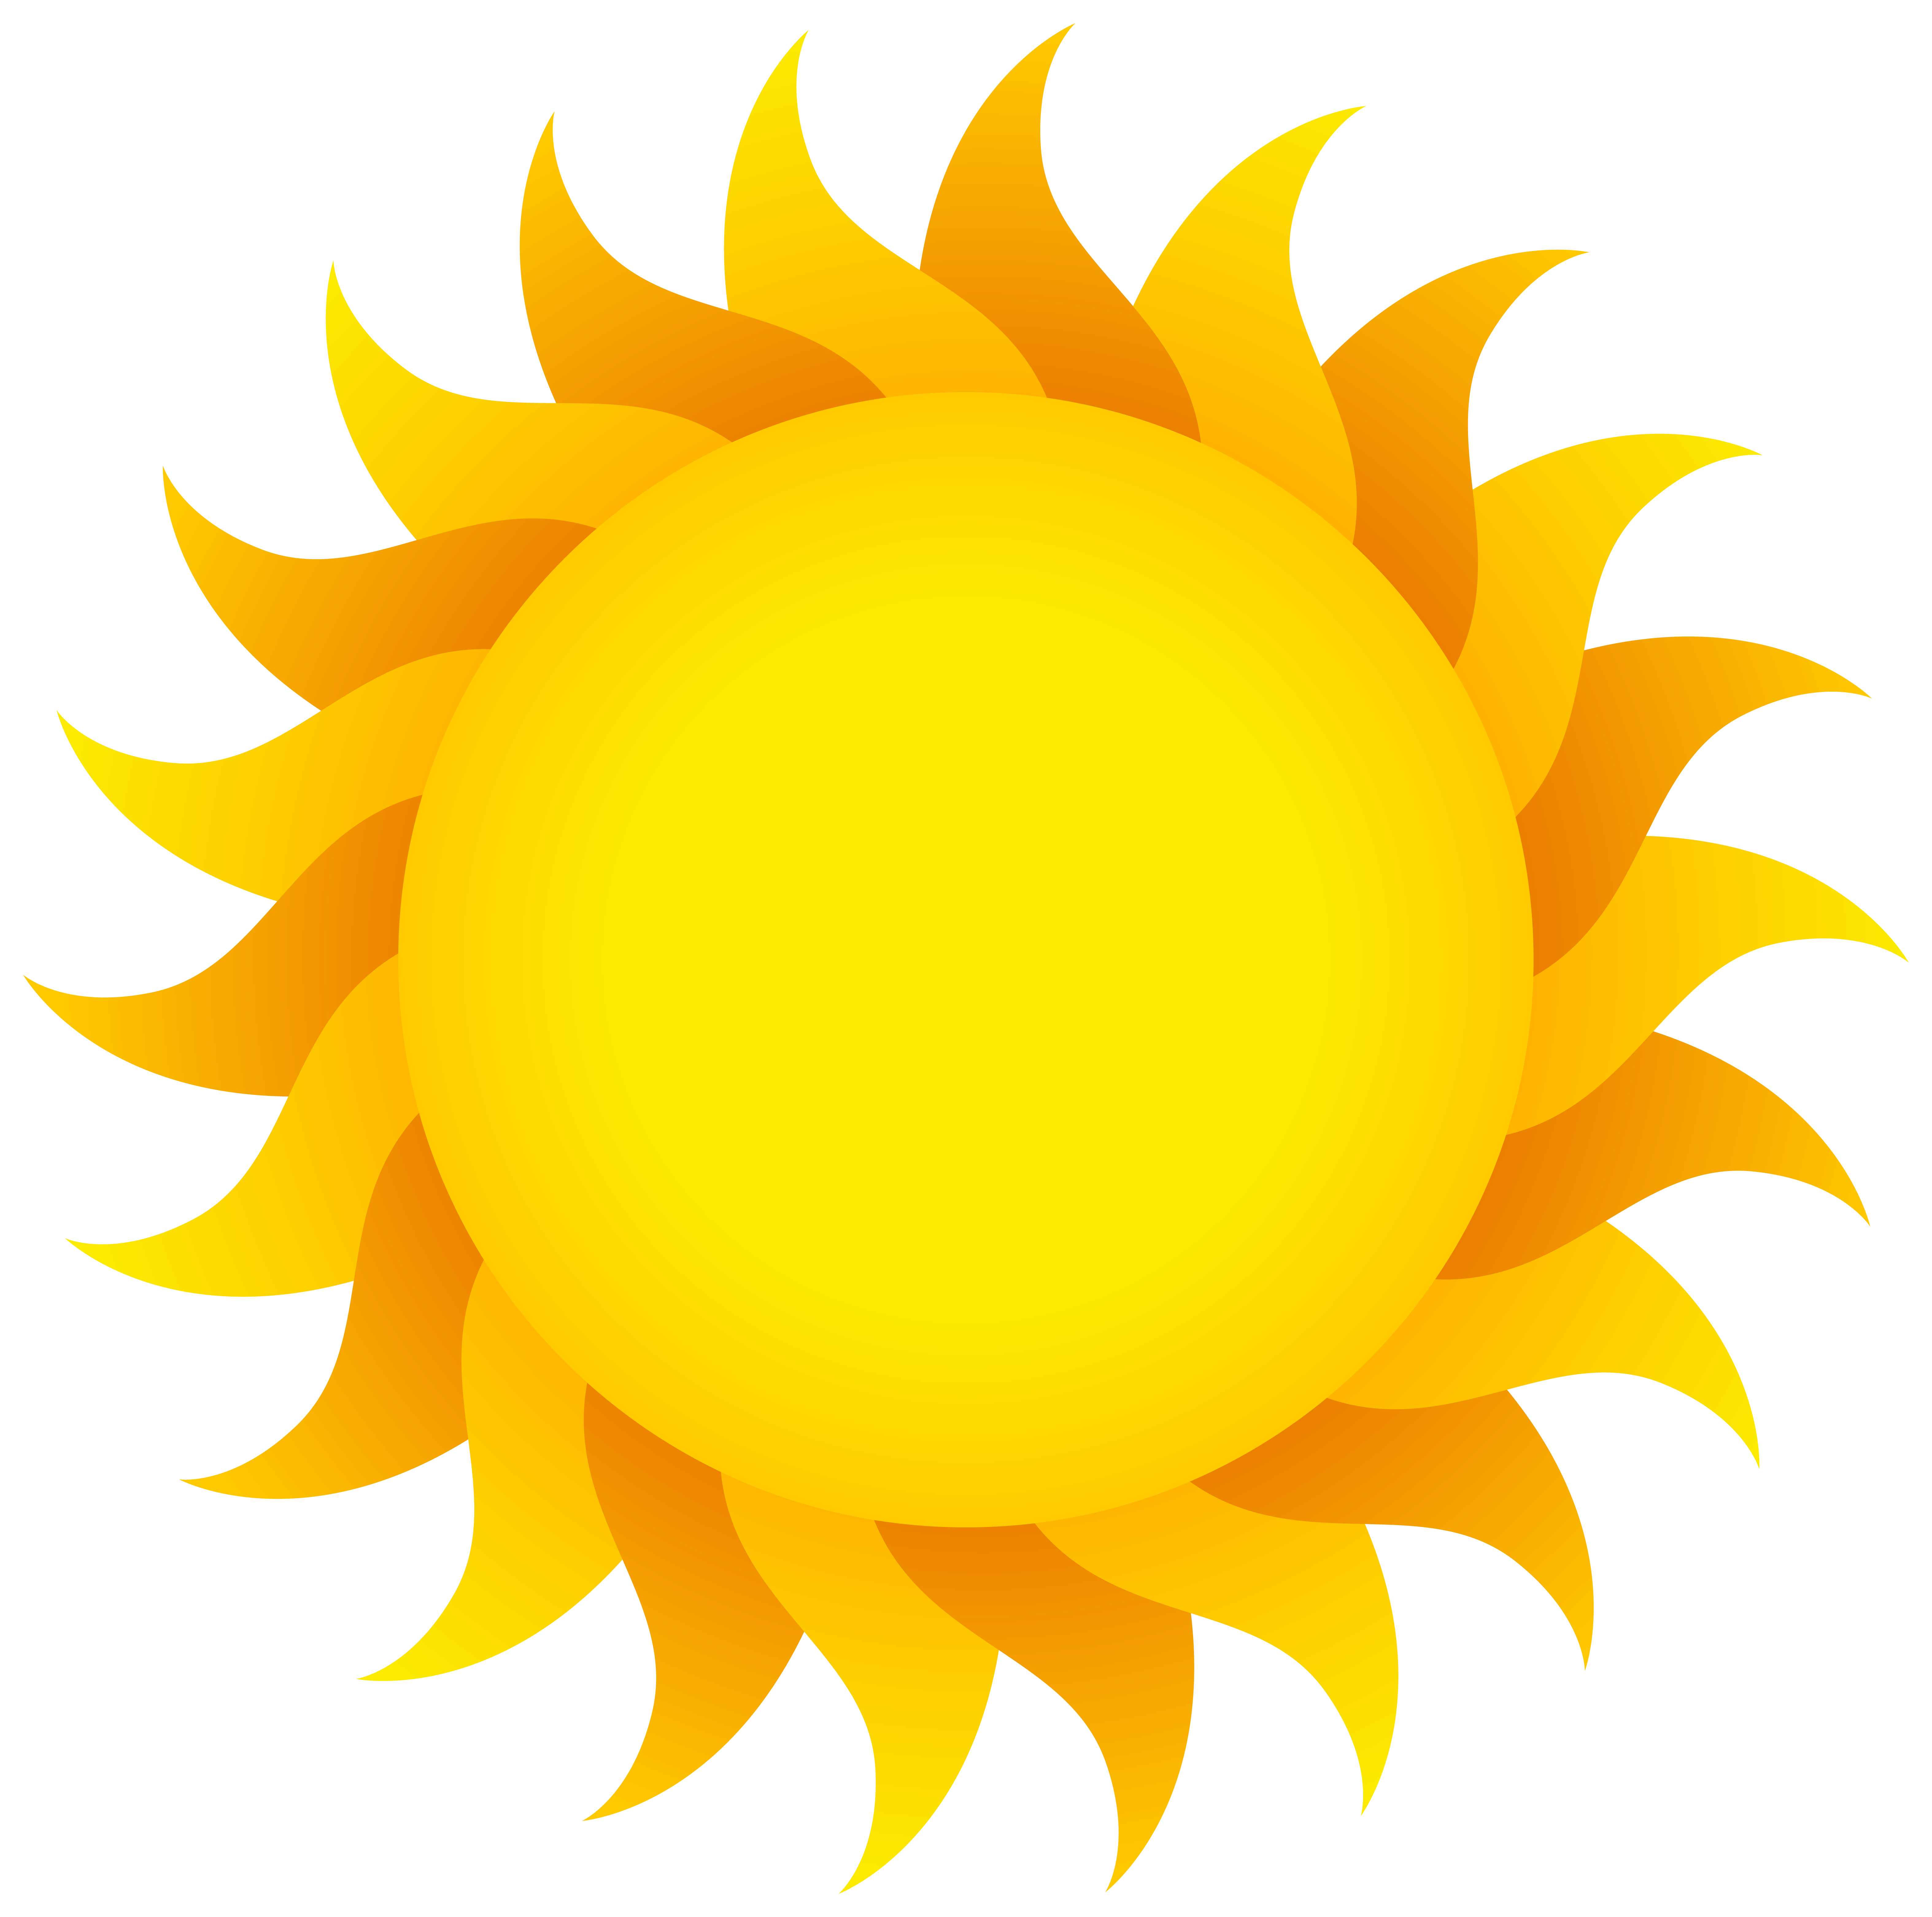 Sun PNG Clear Background Transparent Sun Clear Background.PNG Images.